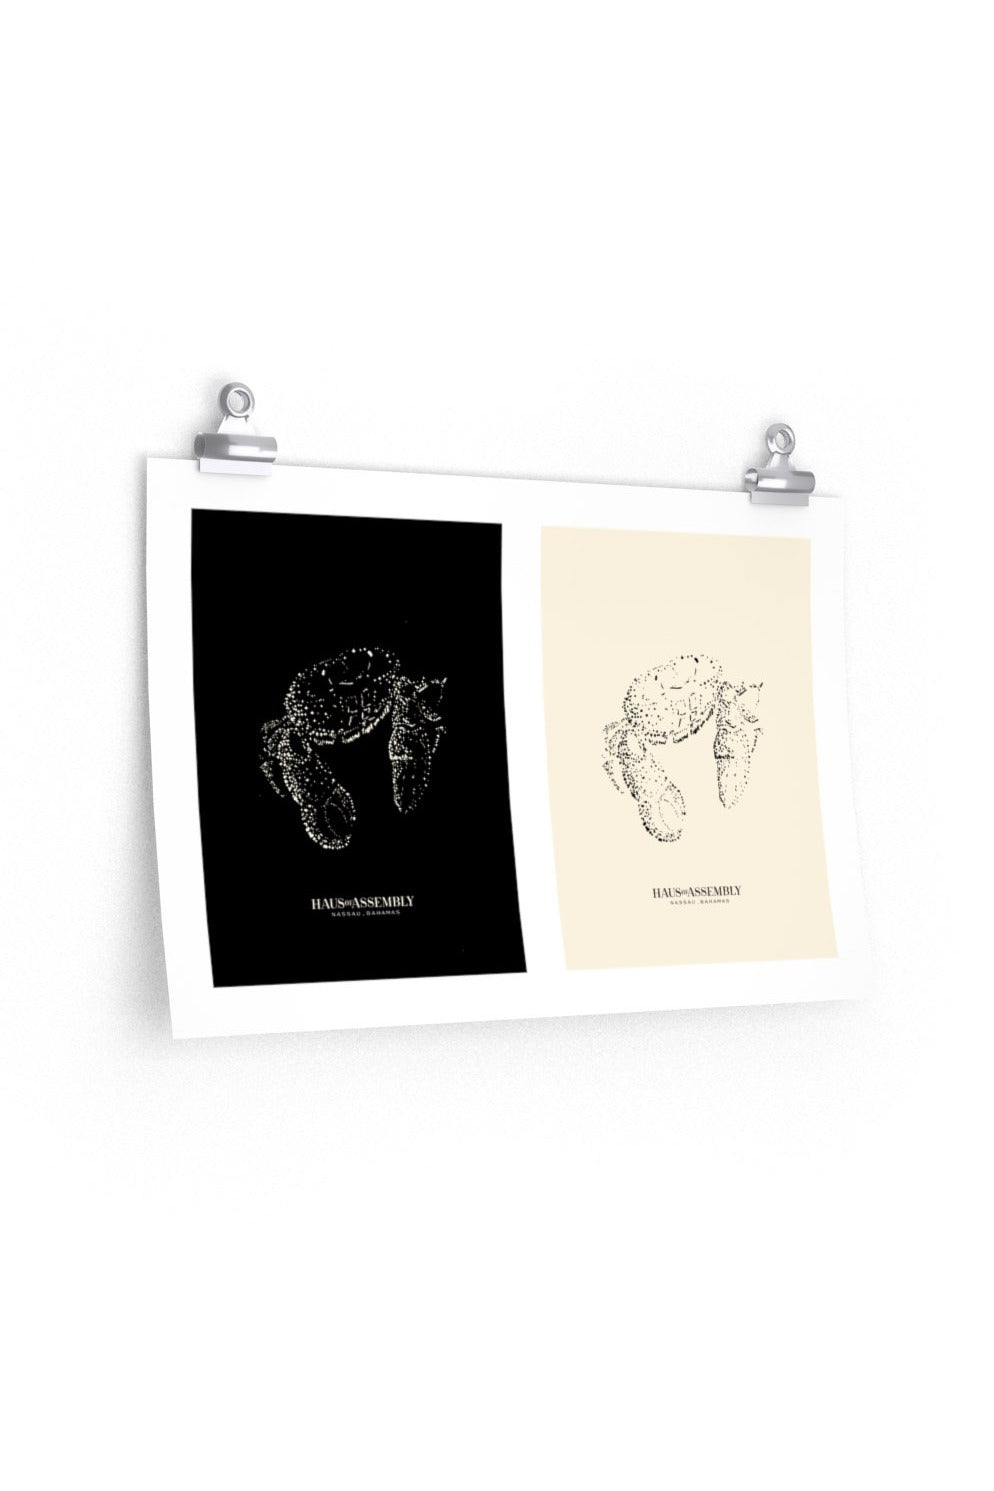 Black + White Crab Duo Portrait* Poster - Hausofassembly